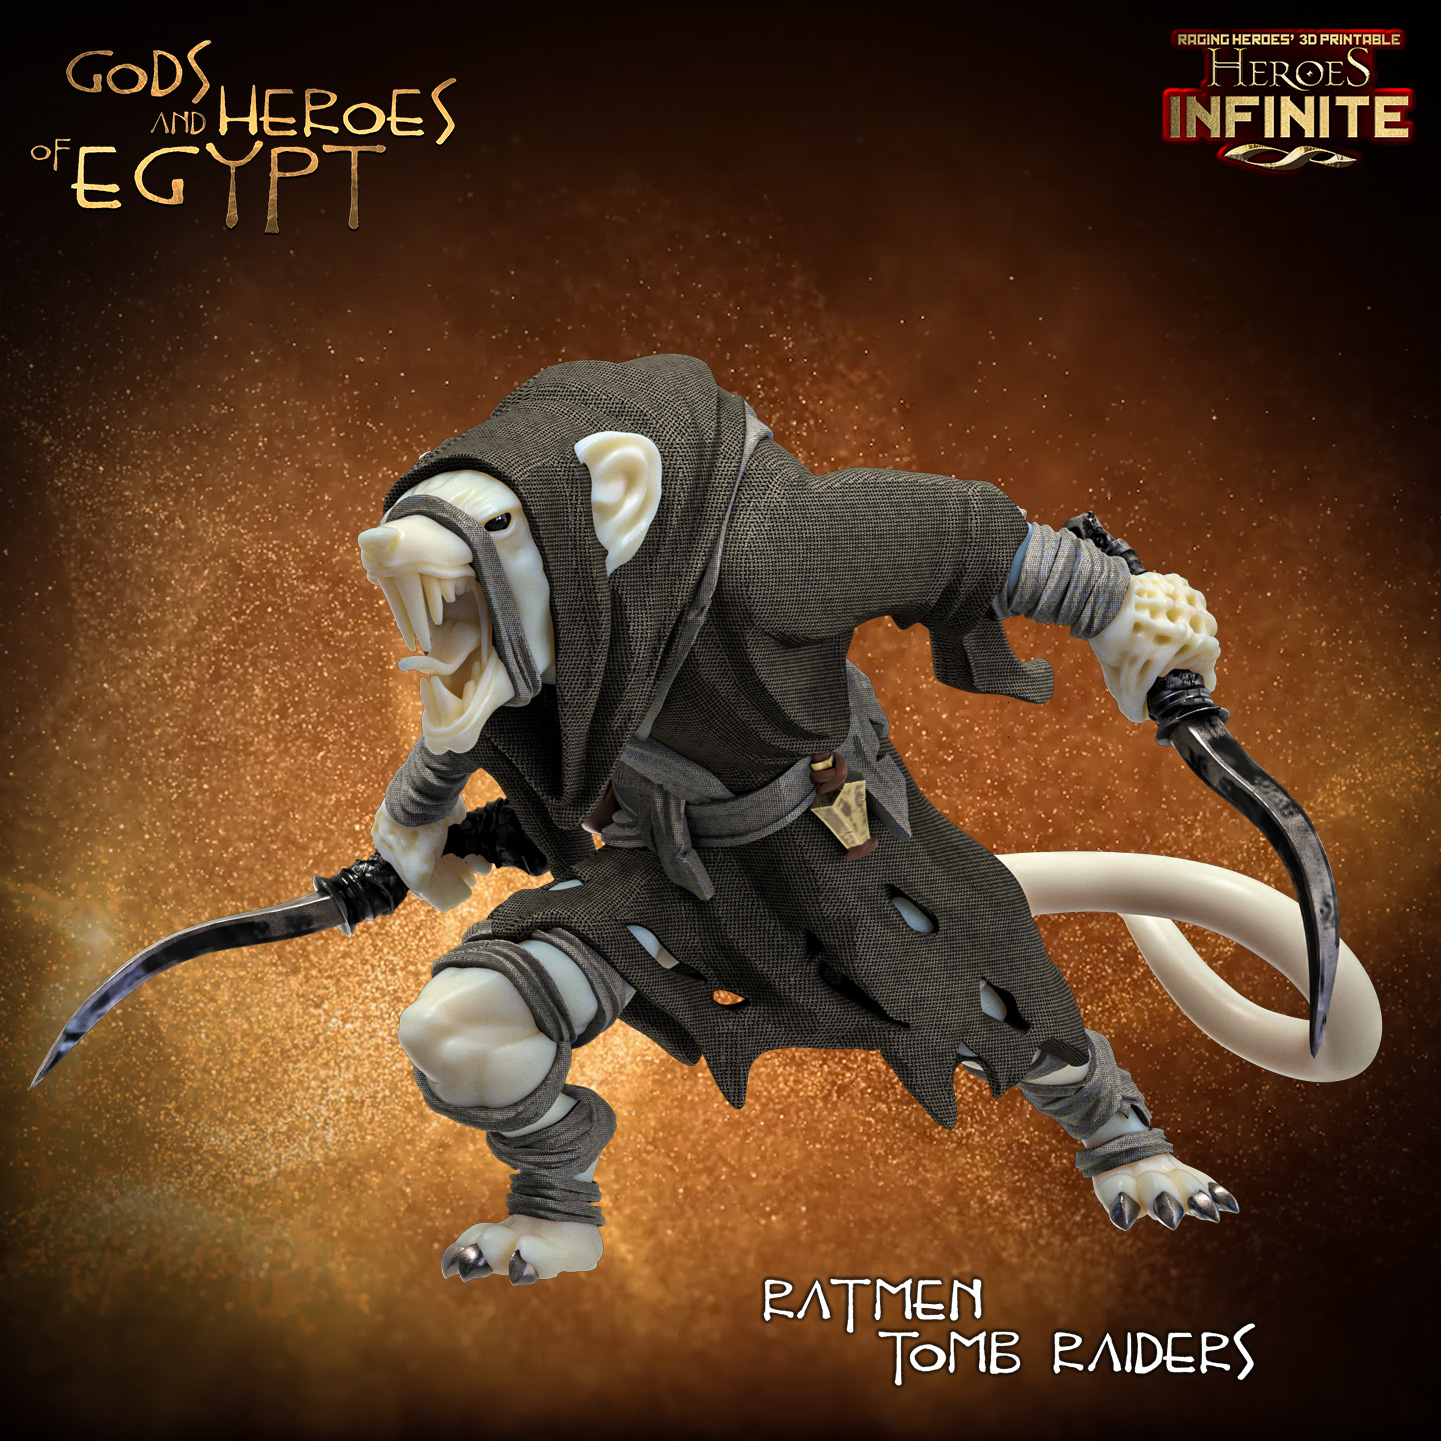 Ratmen Tomb Raiders - Raging Heroes